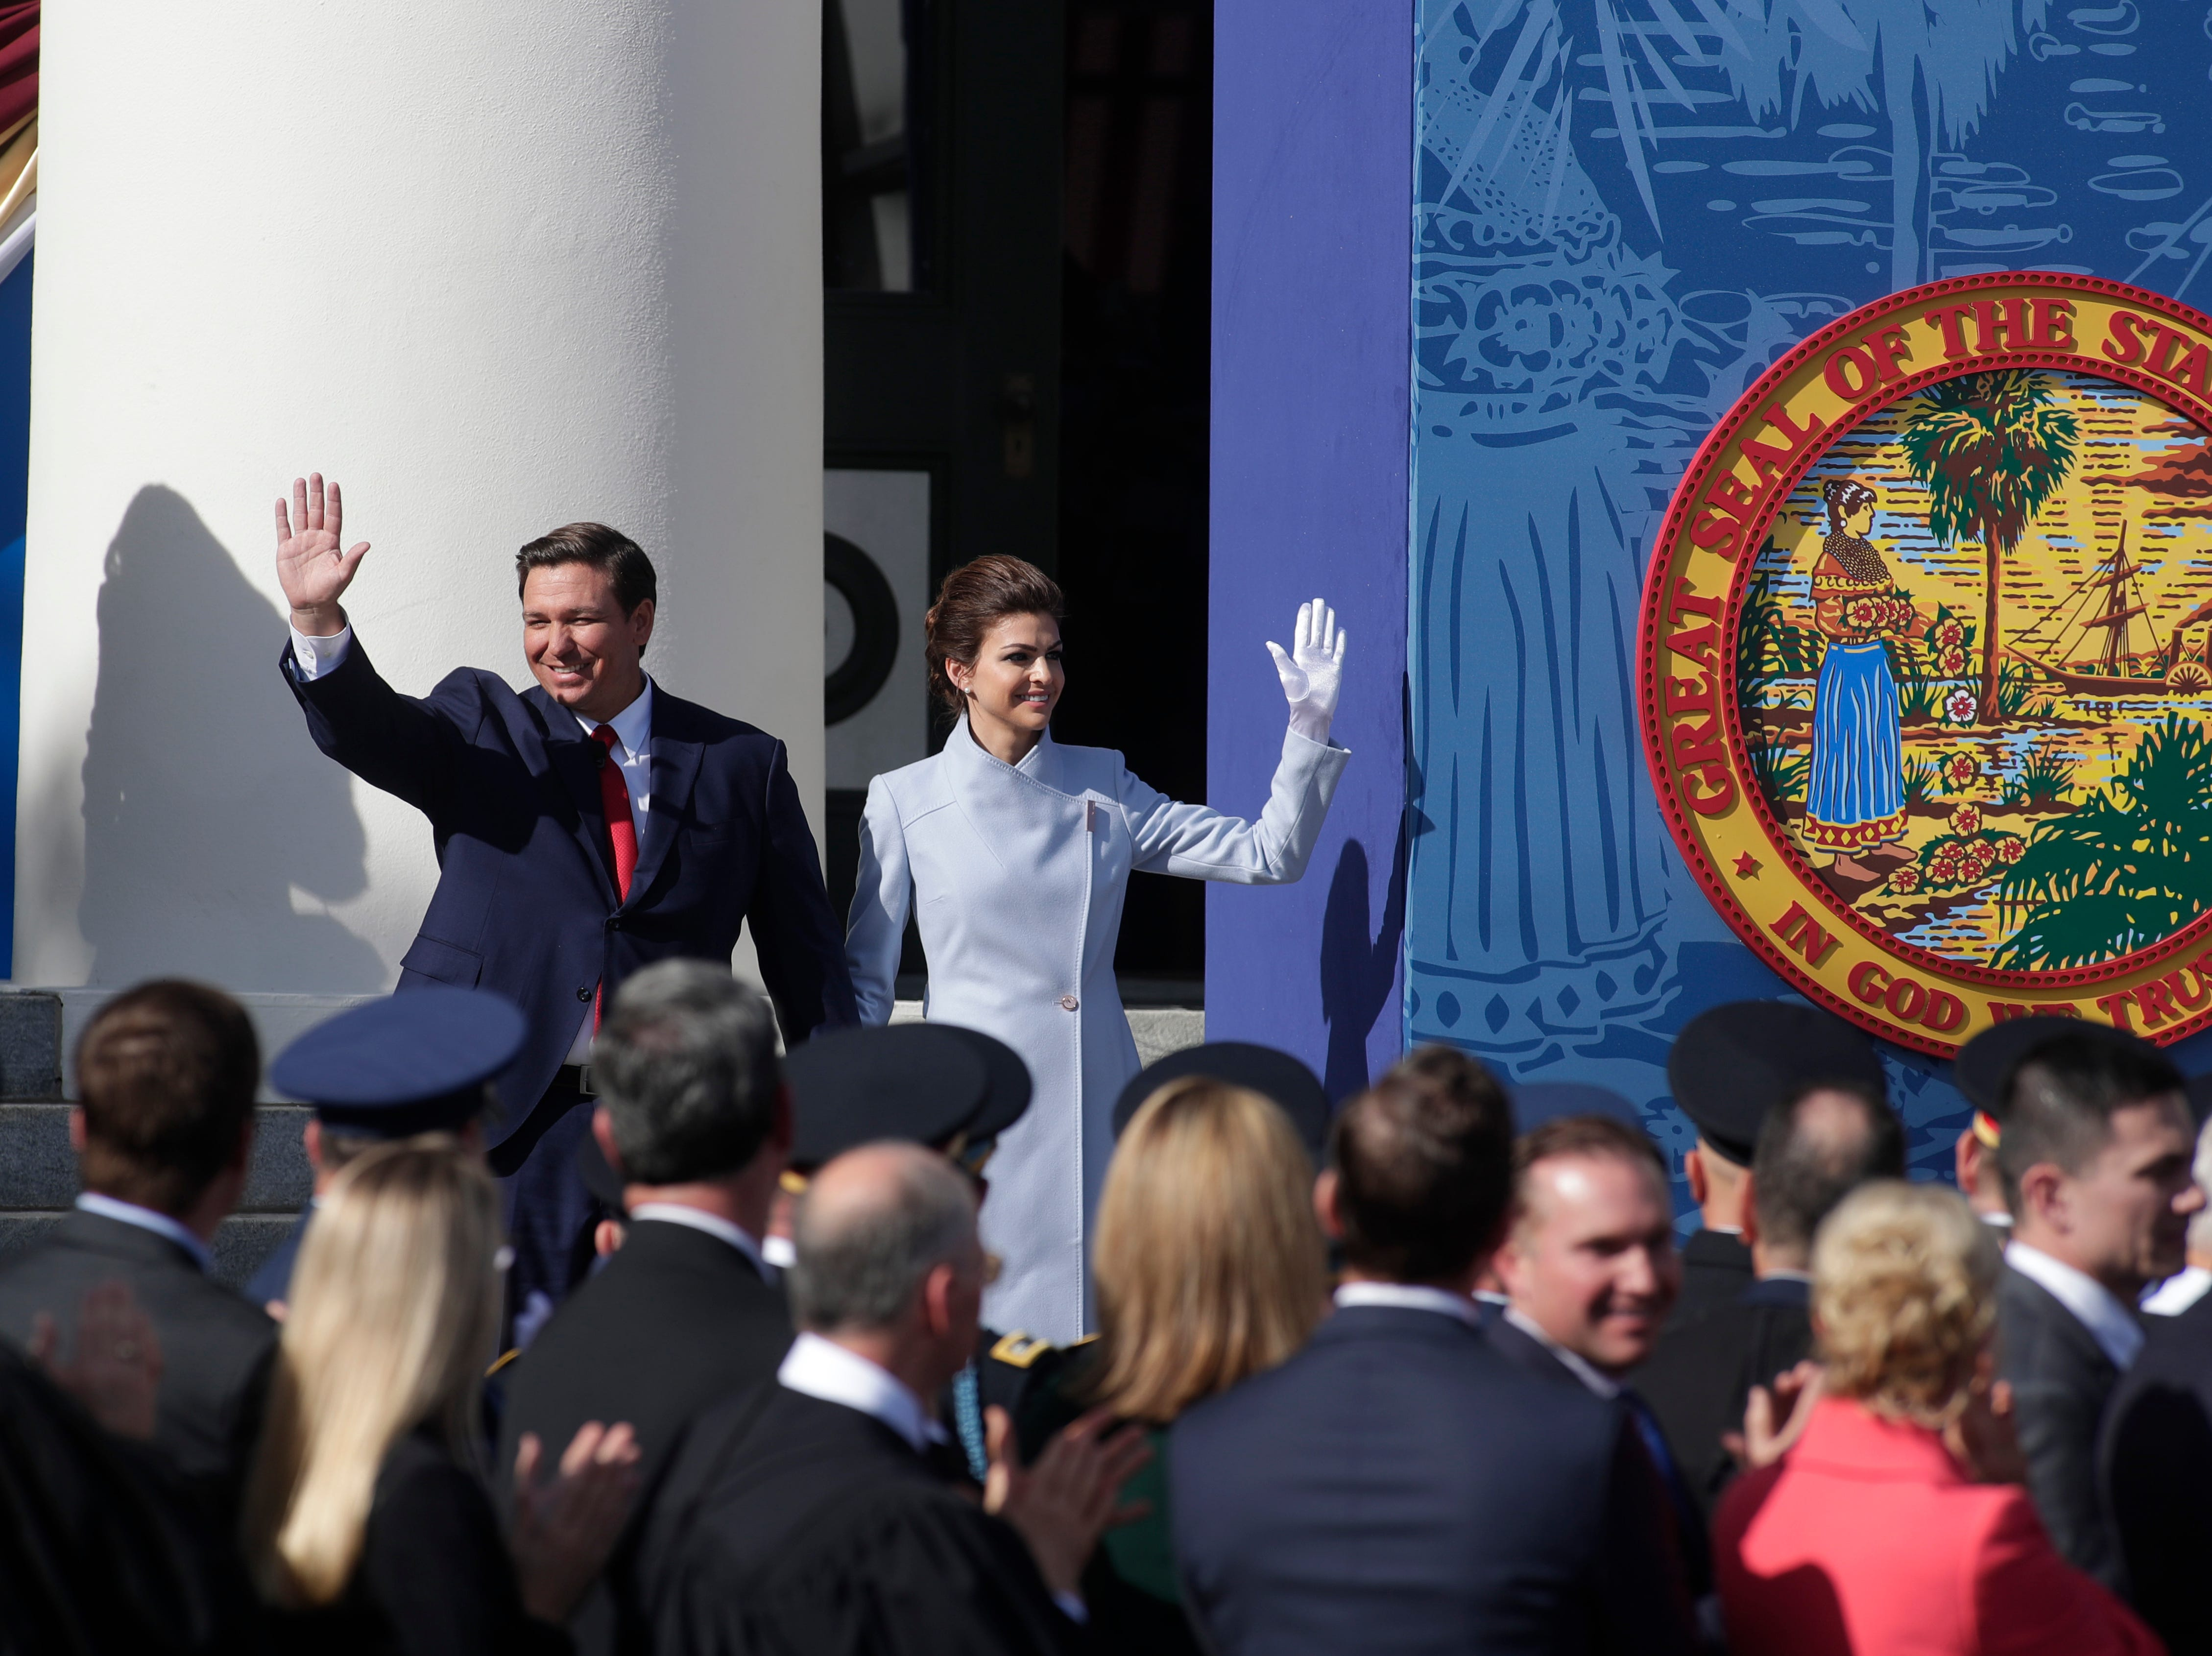 Gov. Ron DeSantis and his wife Casey DeSantis wave to the crowd during the 2019 inauguration ceremony on the steps of the Historic Capitol Building in Tallahassee Tuesday, Jan. 8, 2019.